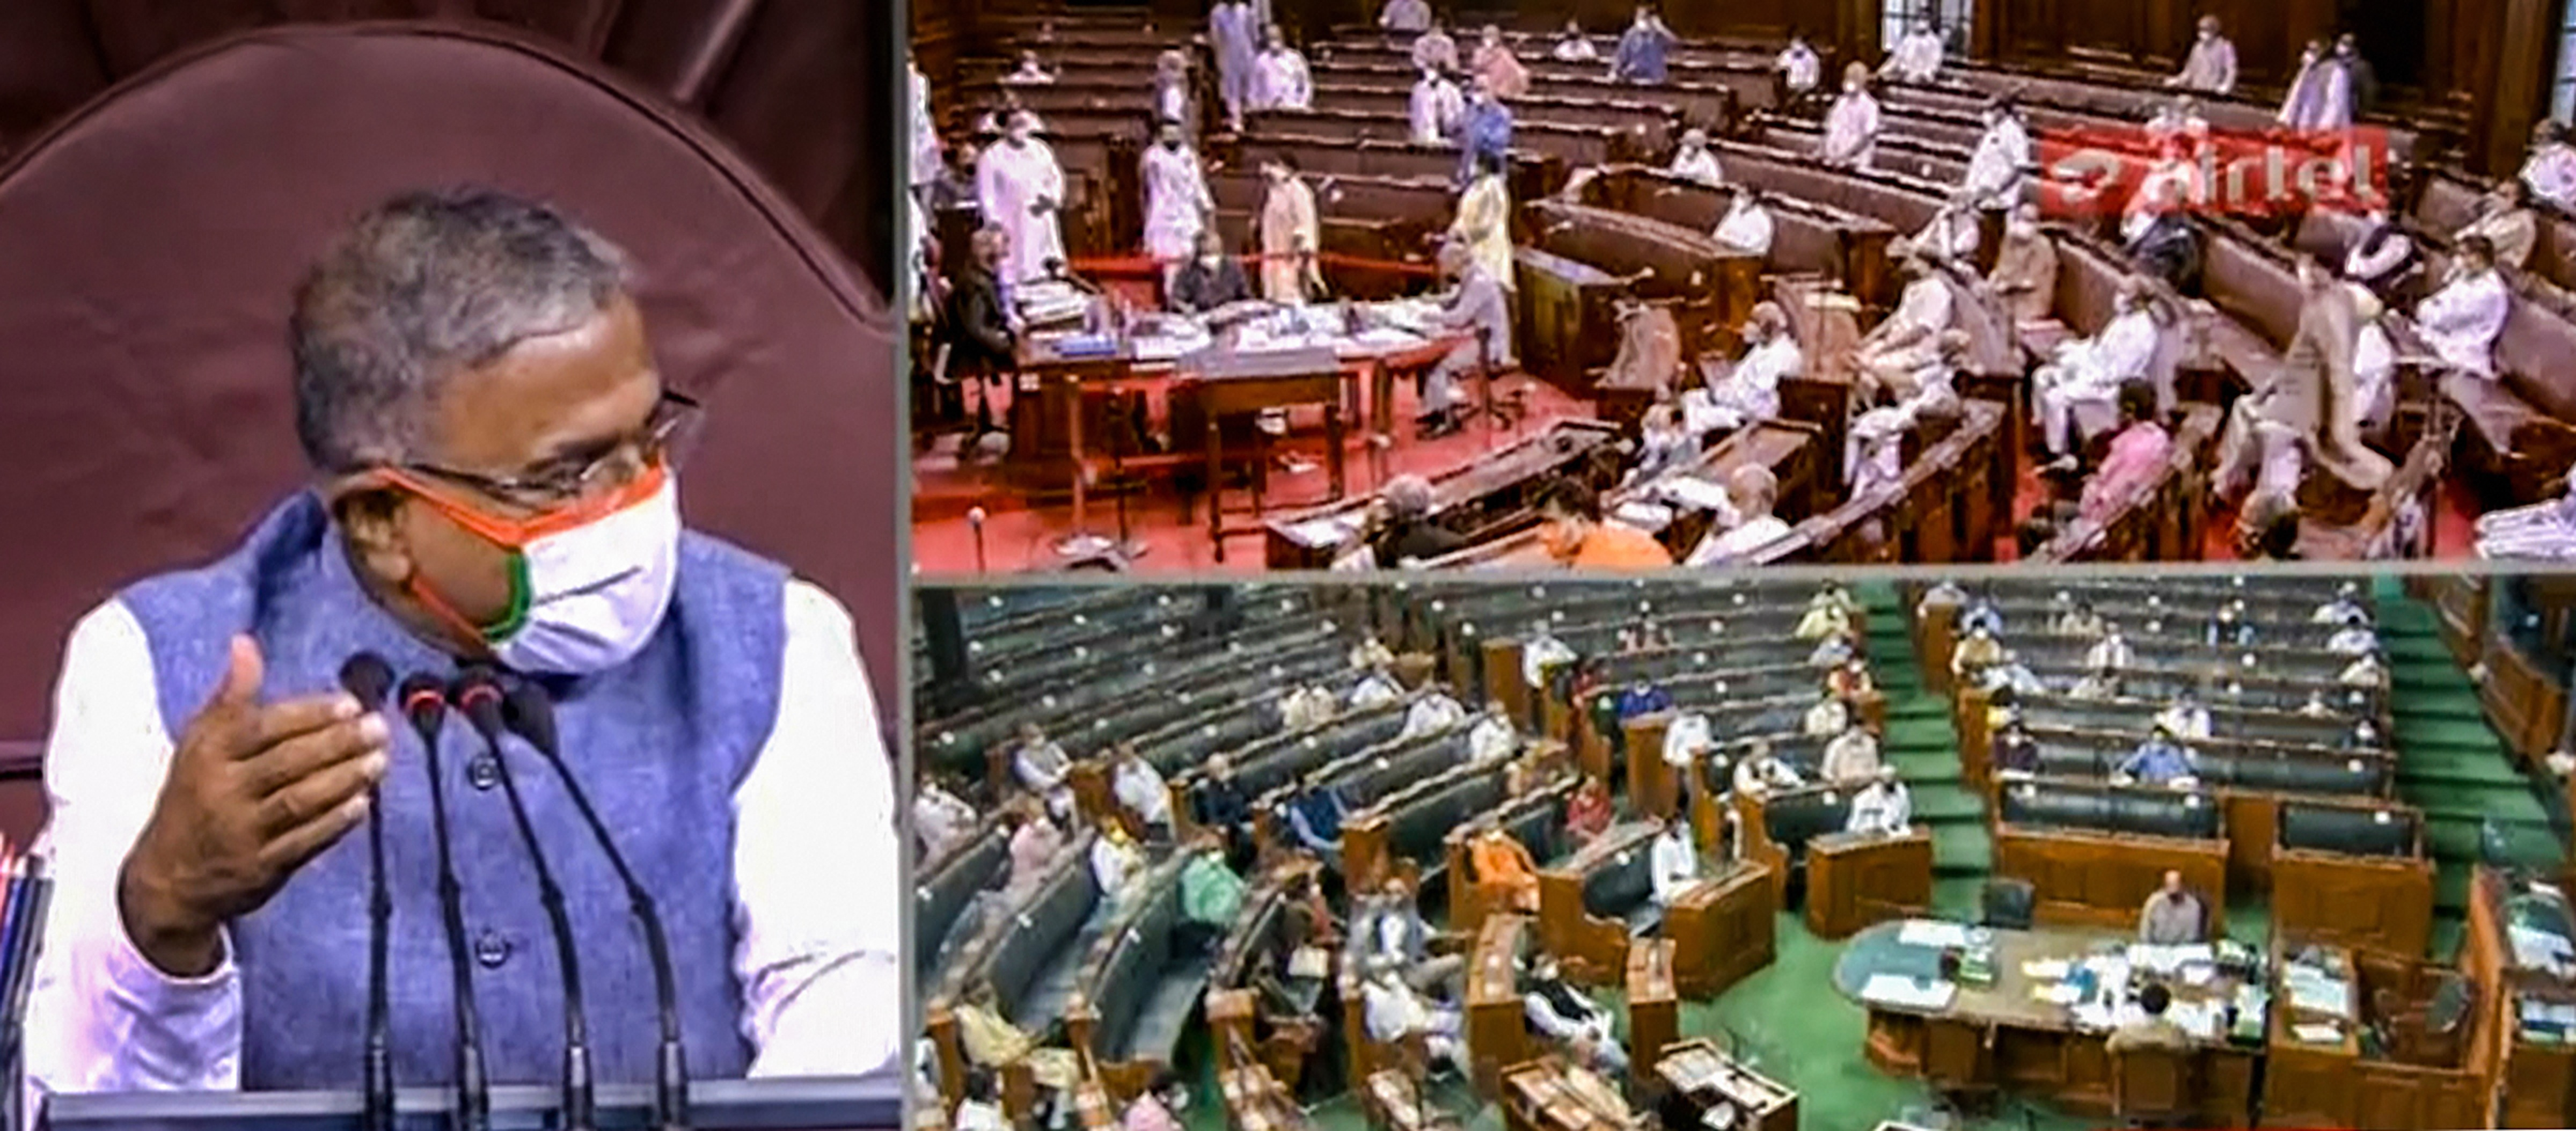 **EDS: VIDEO GRAB** New Delhi: Rajya Sabha Deputy Chairman Harivansh Singh conducts proceedings as ruckus erupts in the upper house over agriculture related bills, during the ongoing Monsoon Session, at Parliament House in New Delhi, Sunday, Sept.20, 2020. (RSTV/PTI Photo)(PTI20-09-2020_000081B)